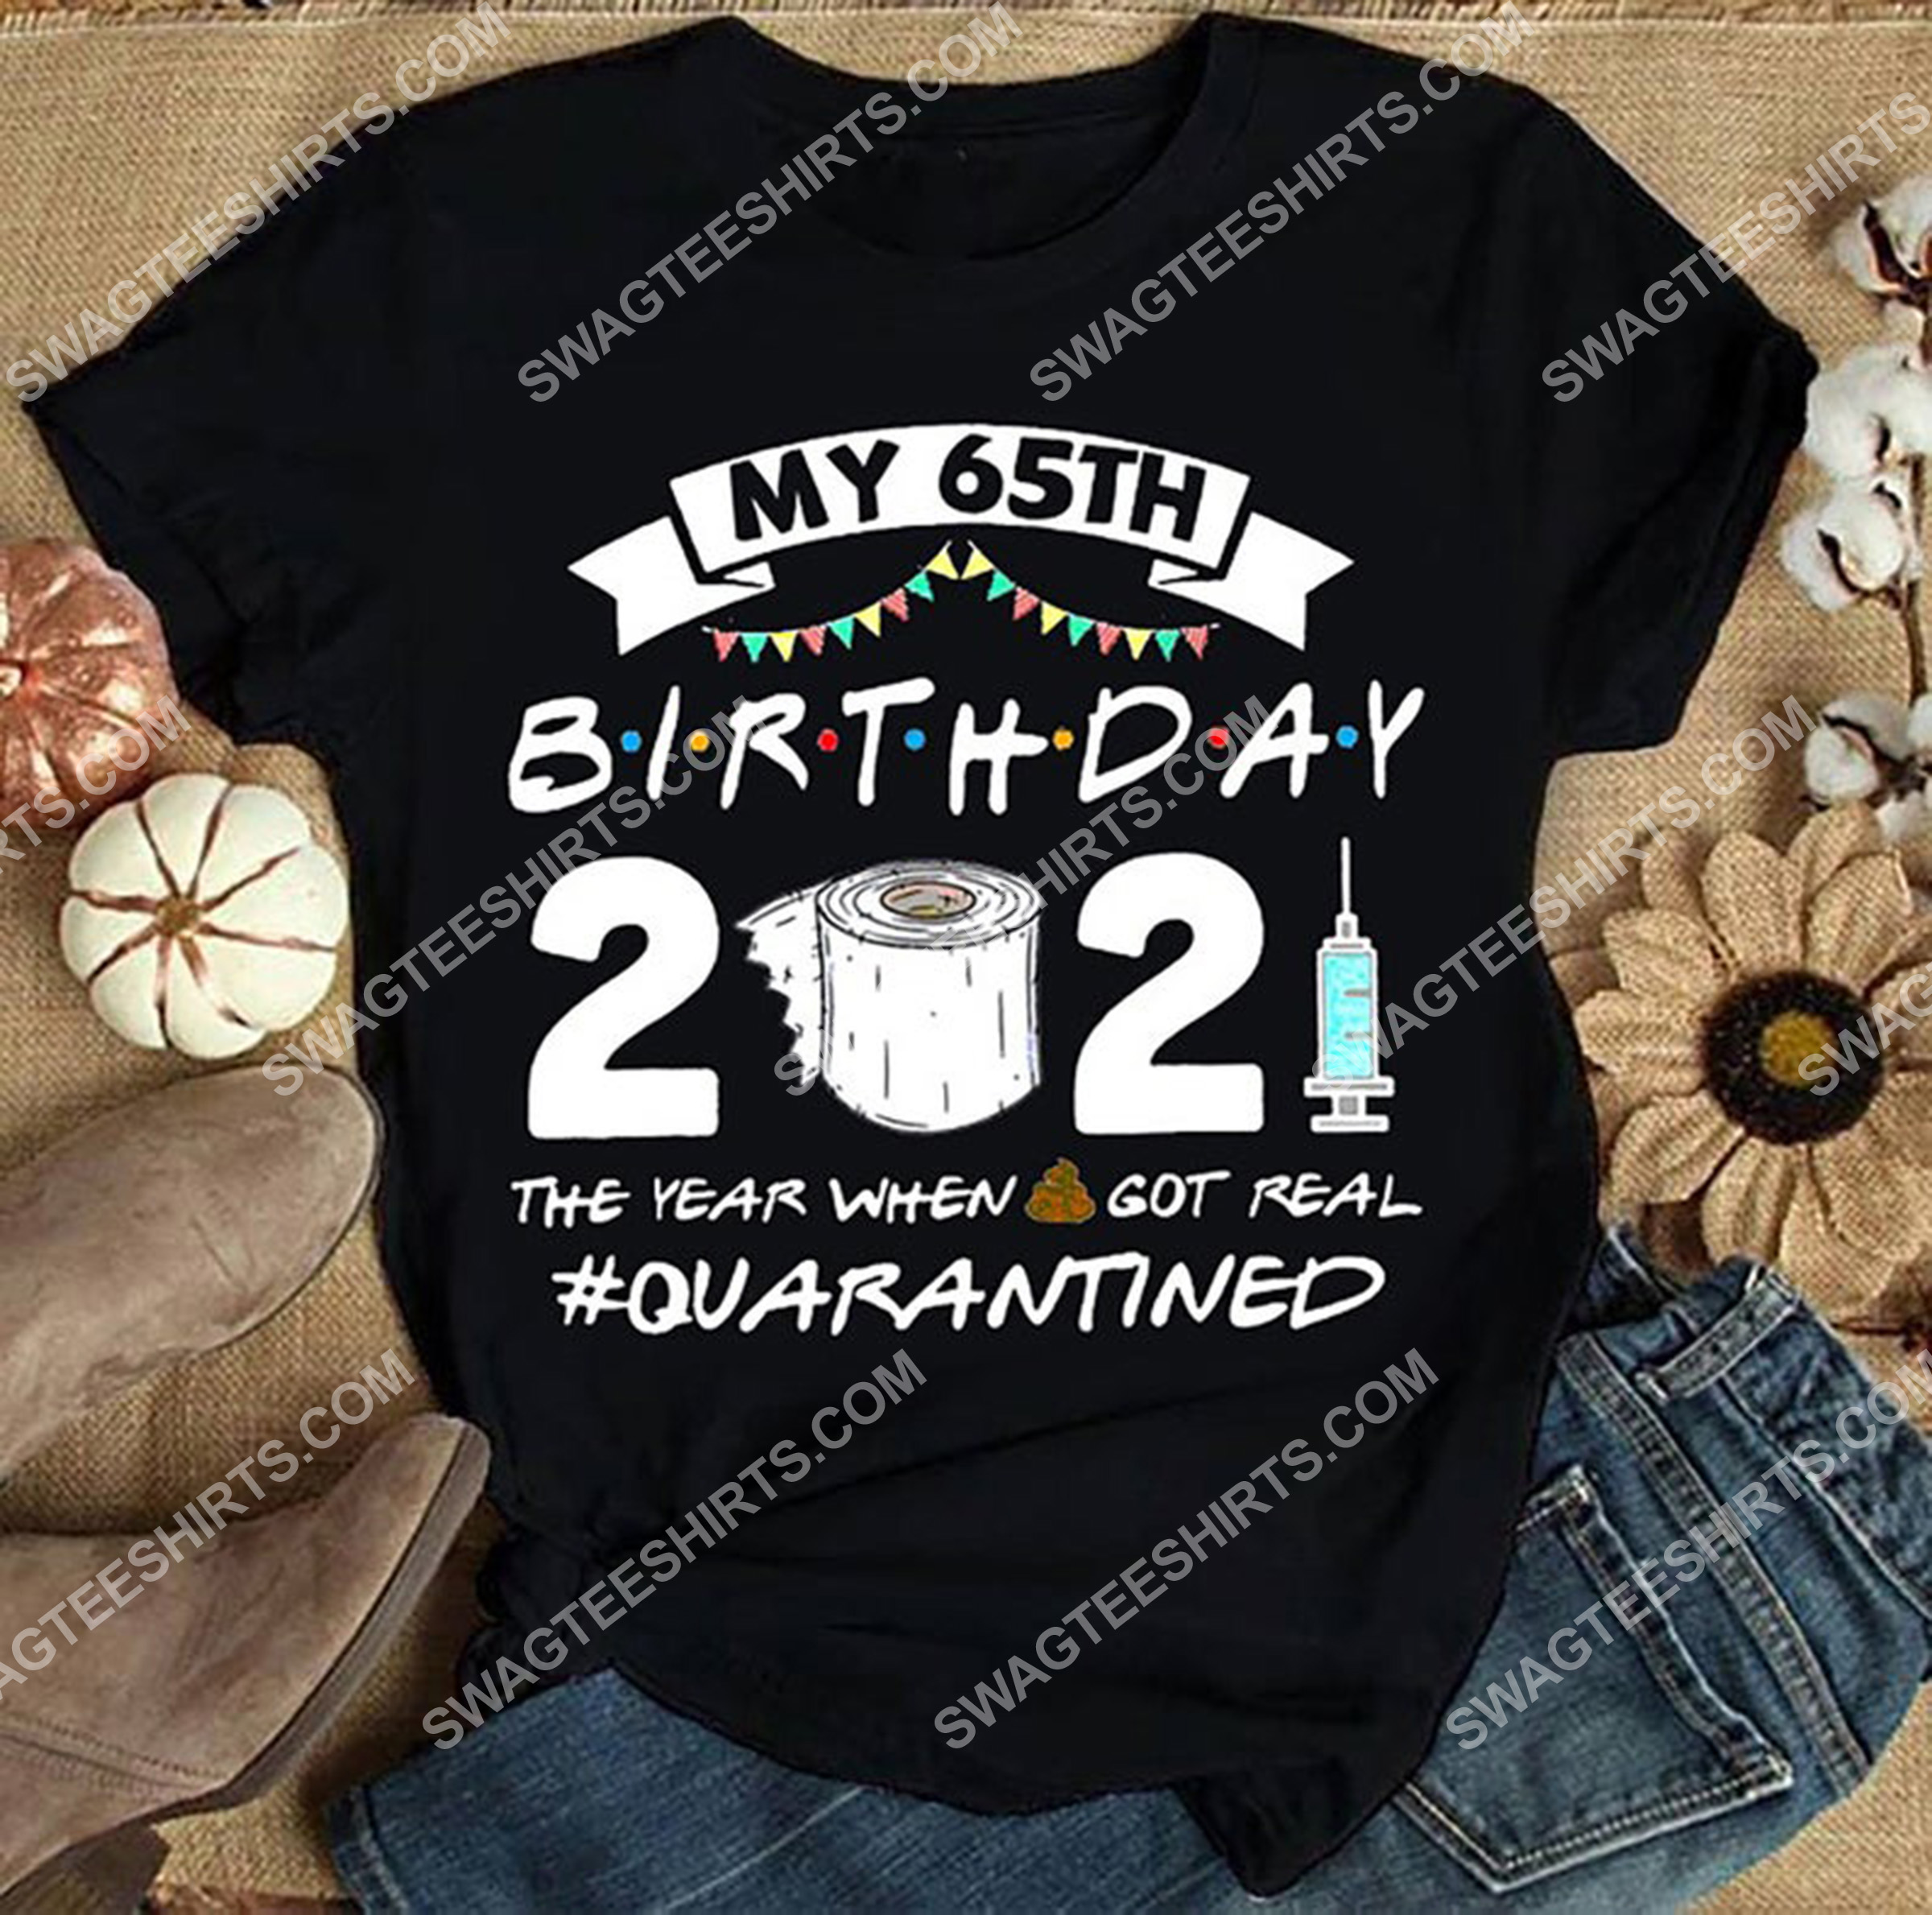 my 65th birthday 2021 the year when shit got real quarantined shirt 3(1) - Copy